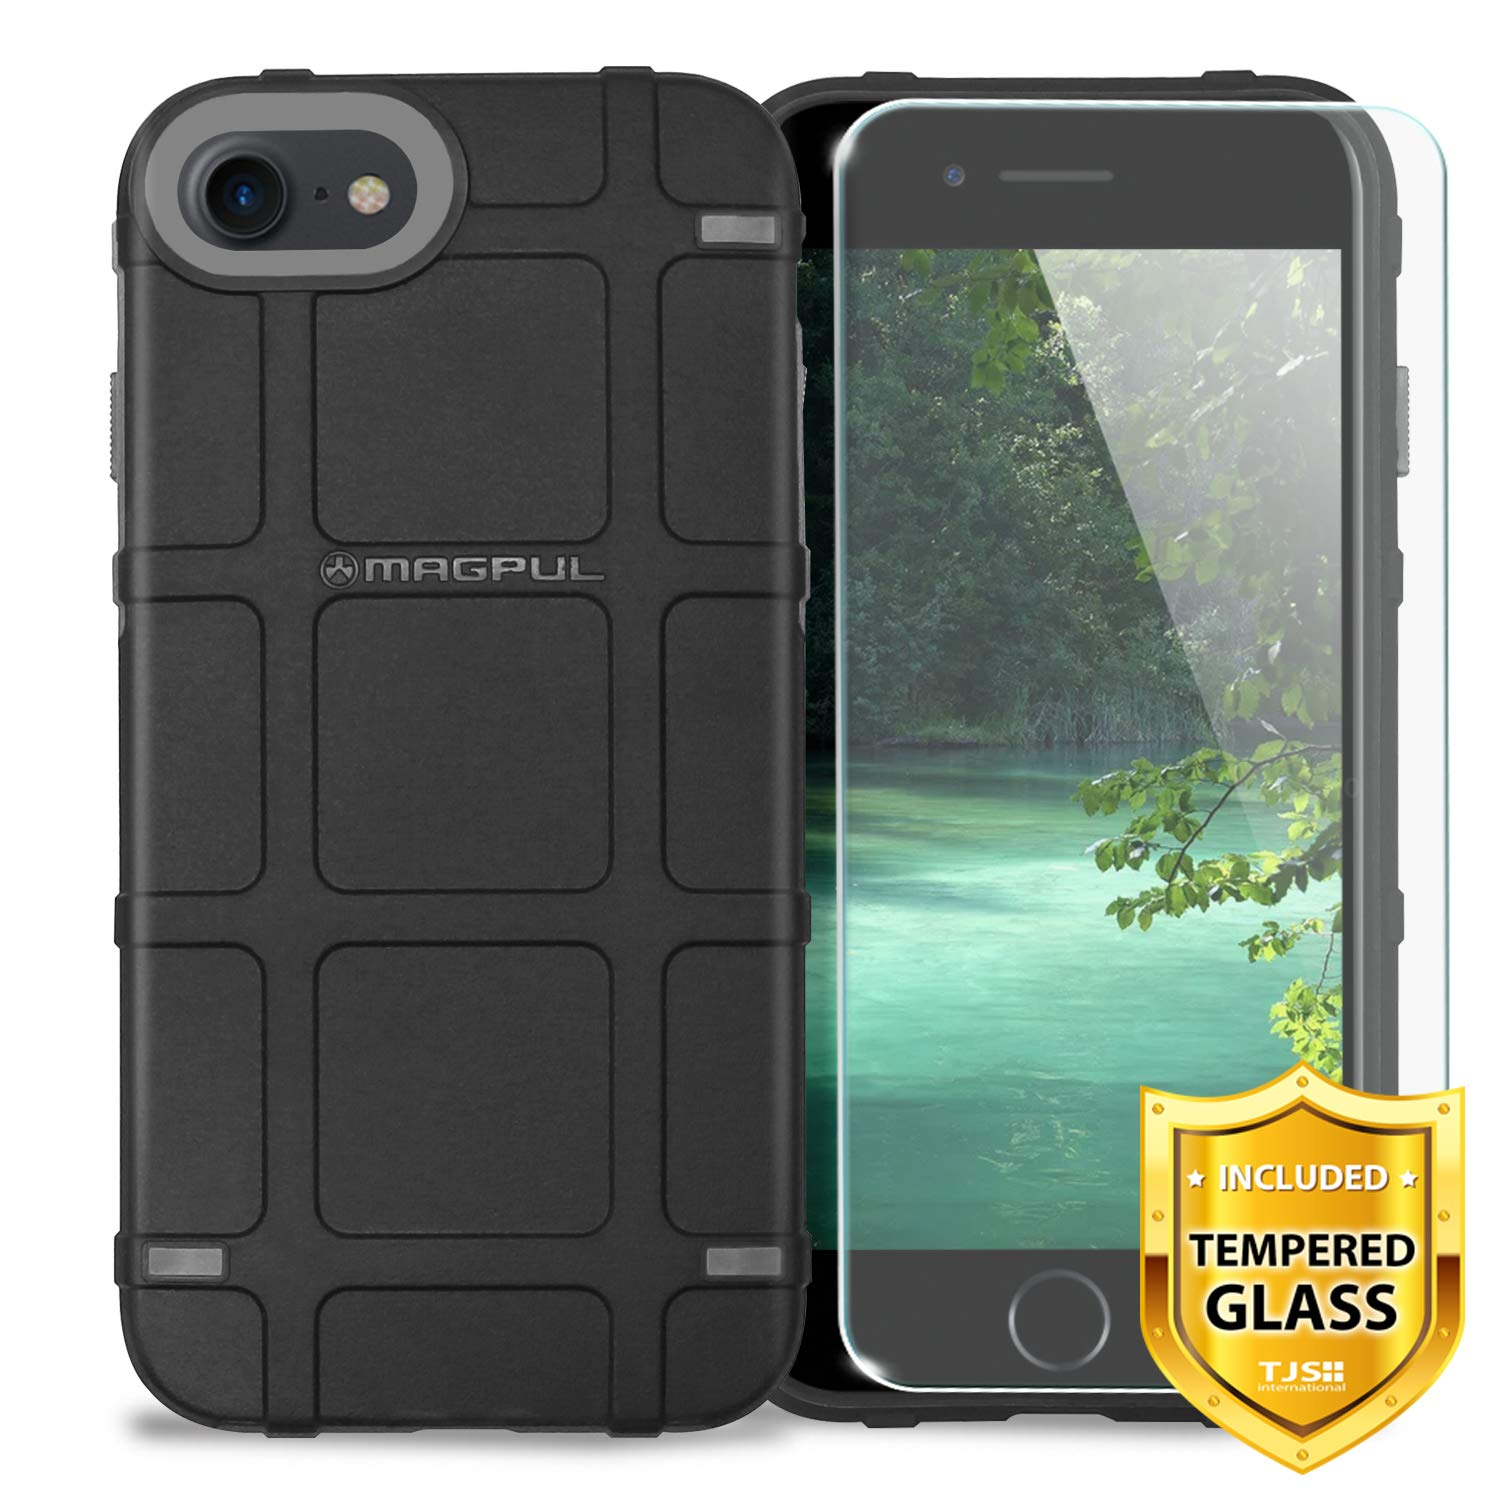 Case for Apple iPhone 7/iPhone 8 4.7'' inch, with [TJS Tempered Glass Screen Protector] Magpul Industries Bump MAG989-BLK Polymer Case Cover Retail Packaging (Black)